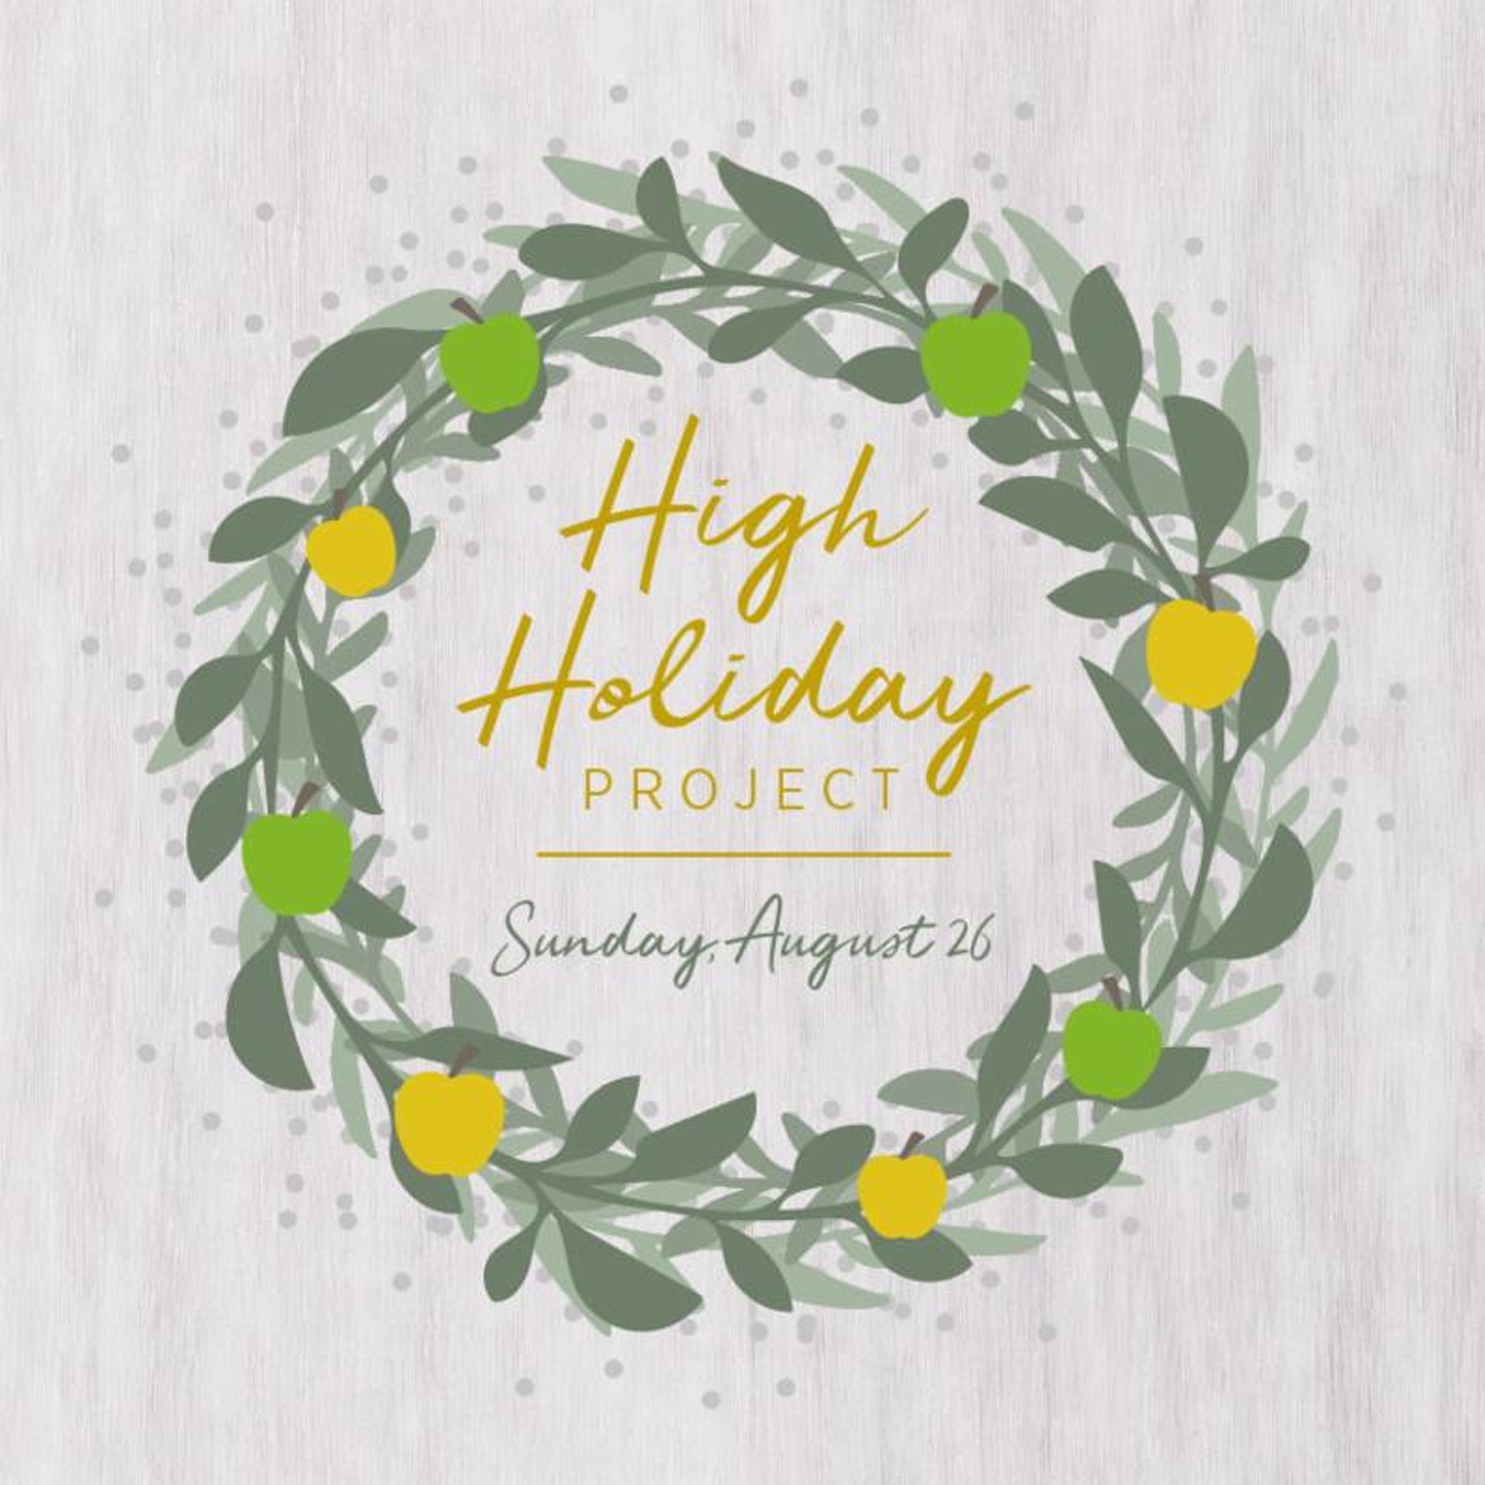 High Holiday Project by WP, YJC and Mamanet